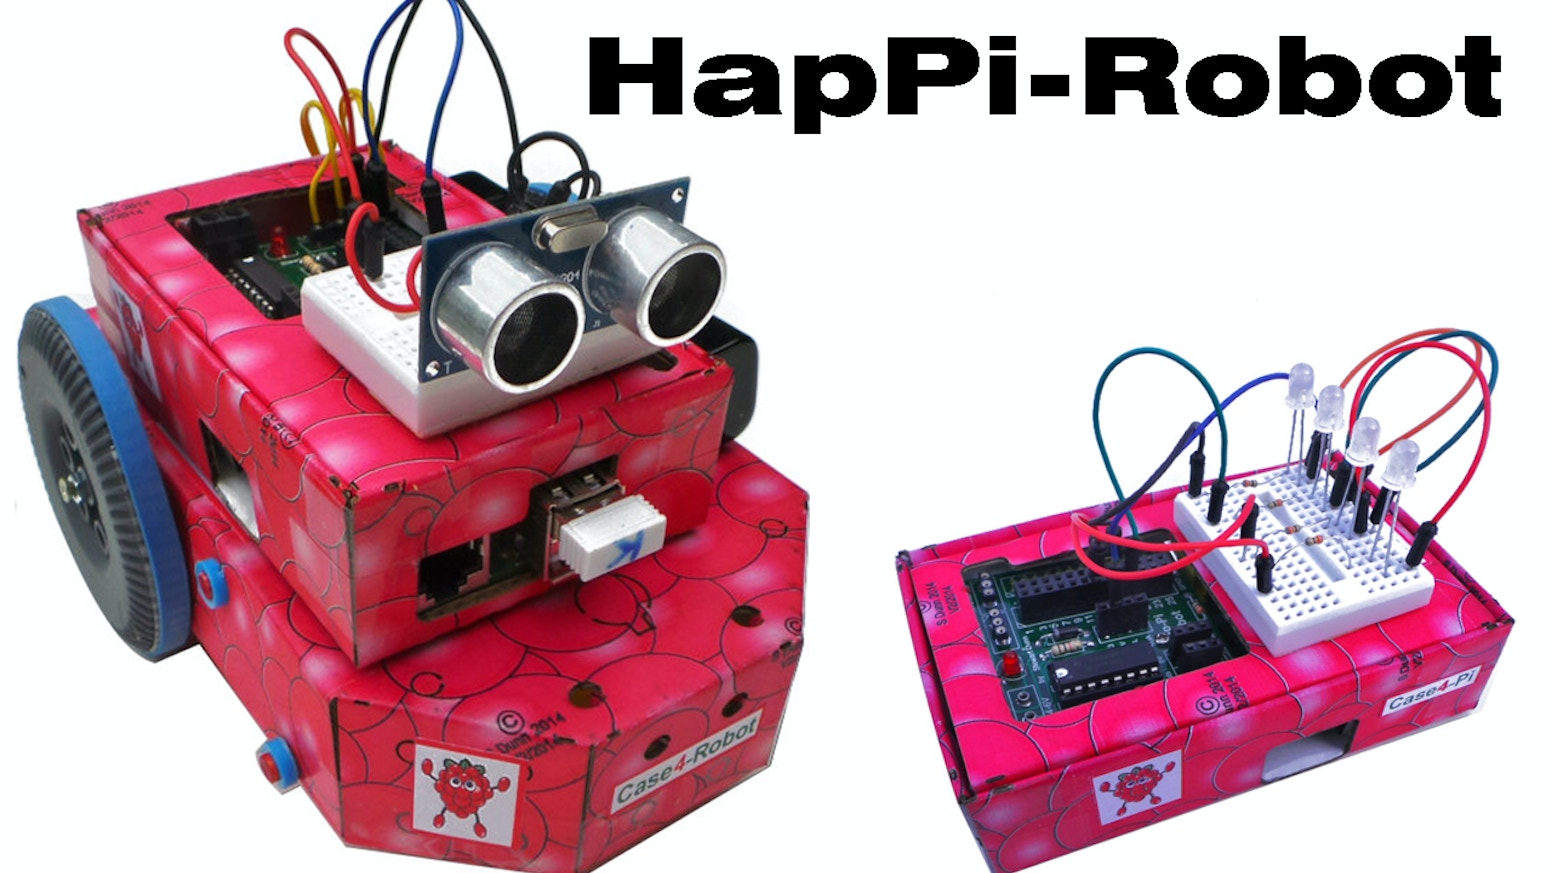 Case4-Kits and HapPi-Robot for the Raspberry Pi by TLBRC and Kre8